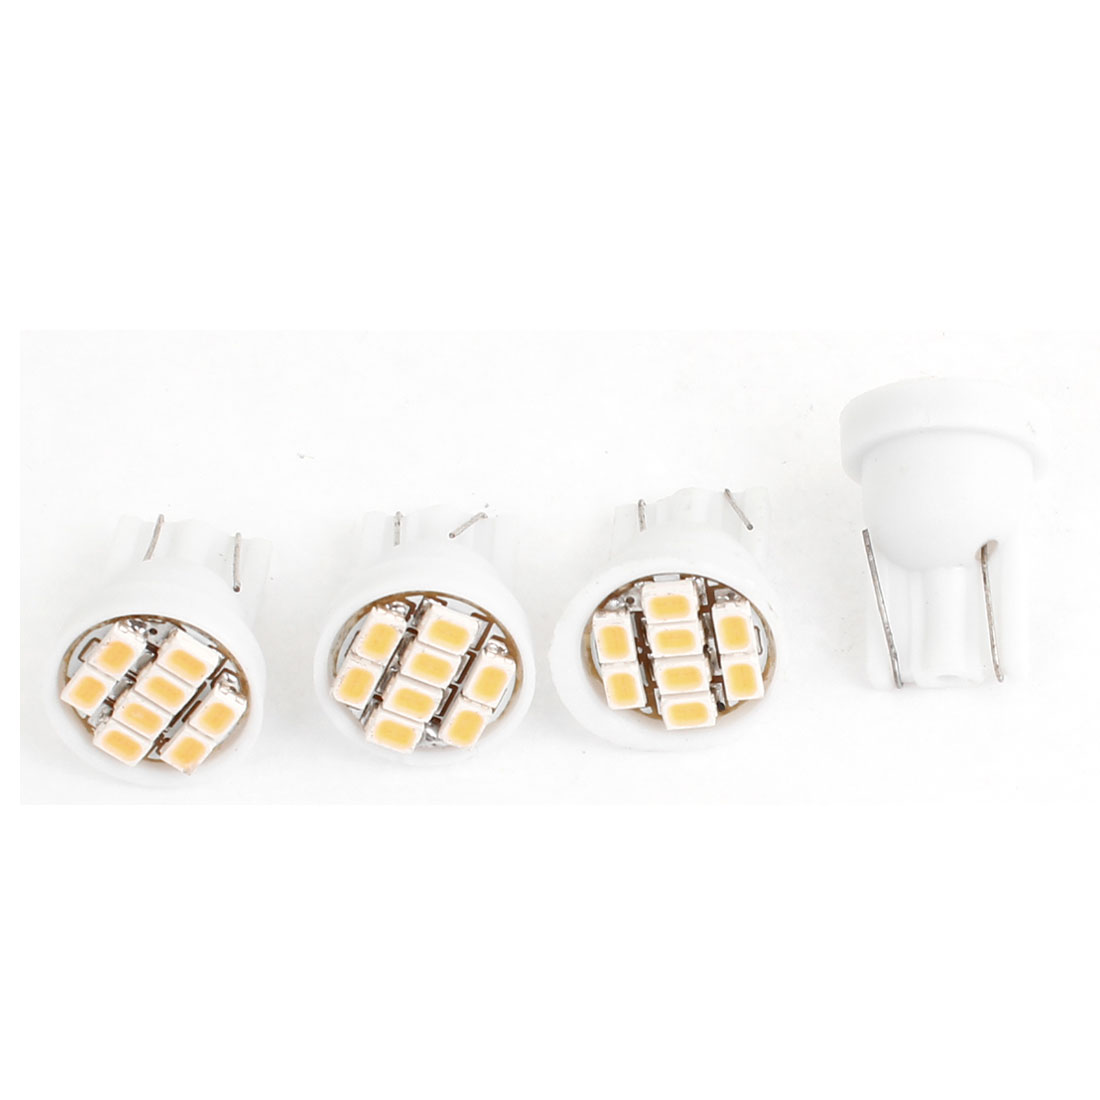 T10 White 8LED 1206SMD Dashboard Instrument Light Bulb 4PCS for Auto Car